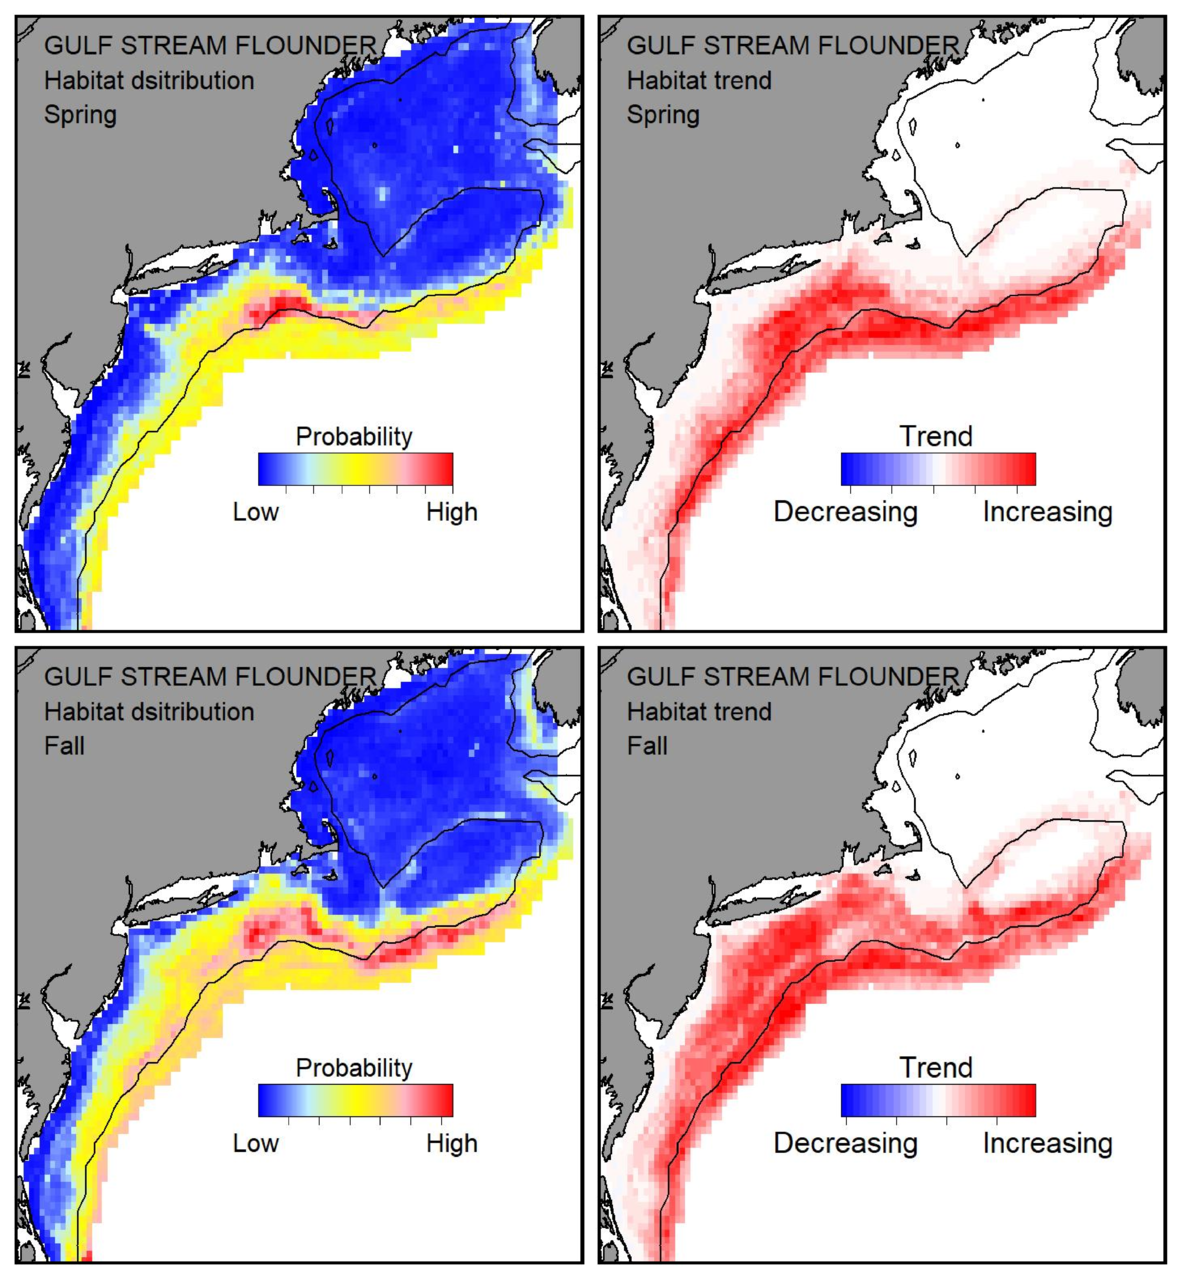 Probable habitat distribution for Gulf Stream flounder showing the highest concentration and increasing trend in the Gulf of Maine during the spring. Bottom row: Probable habitat distribution for Gulf Stream flounder showing the highest concentration and increasing trend in the Gulf of Maine during the fall.